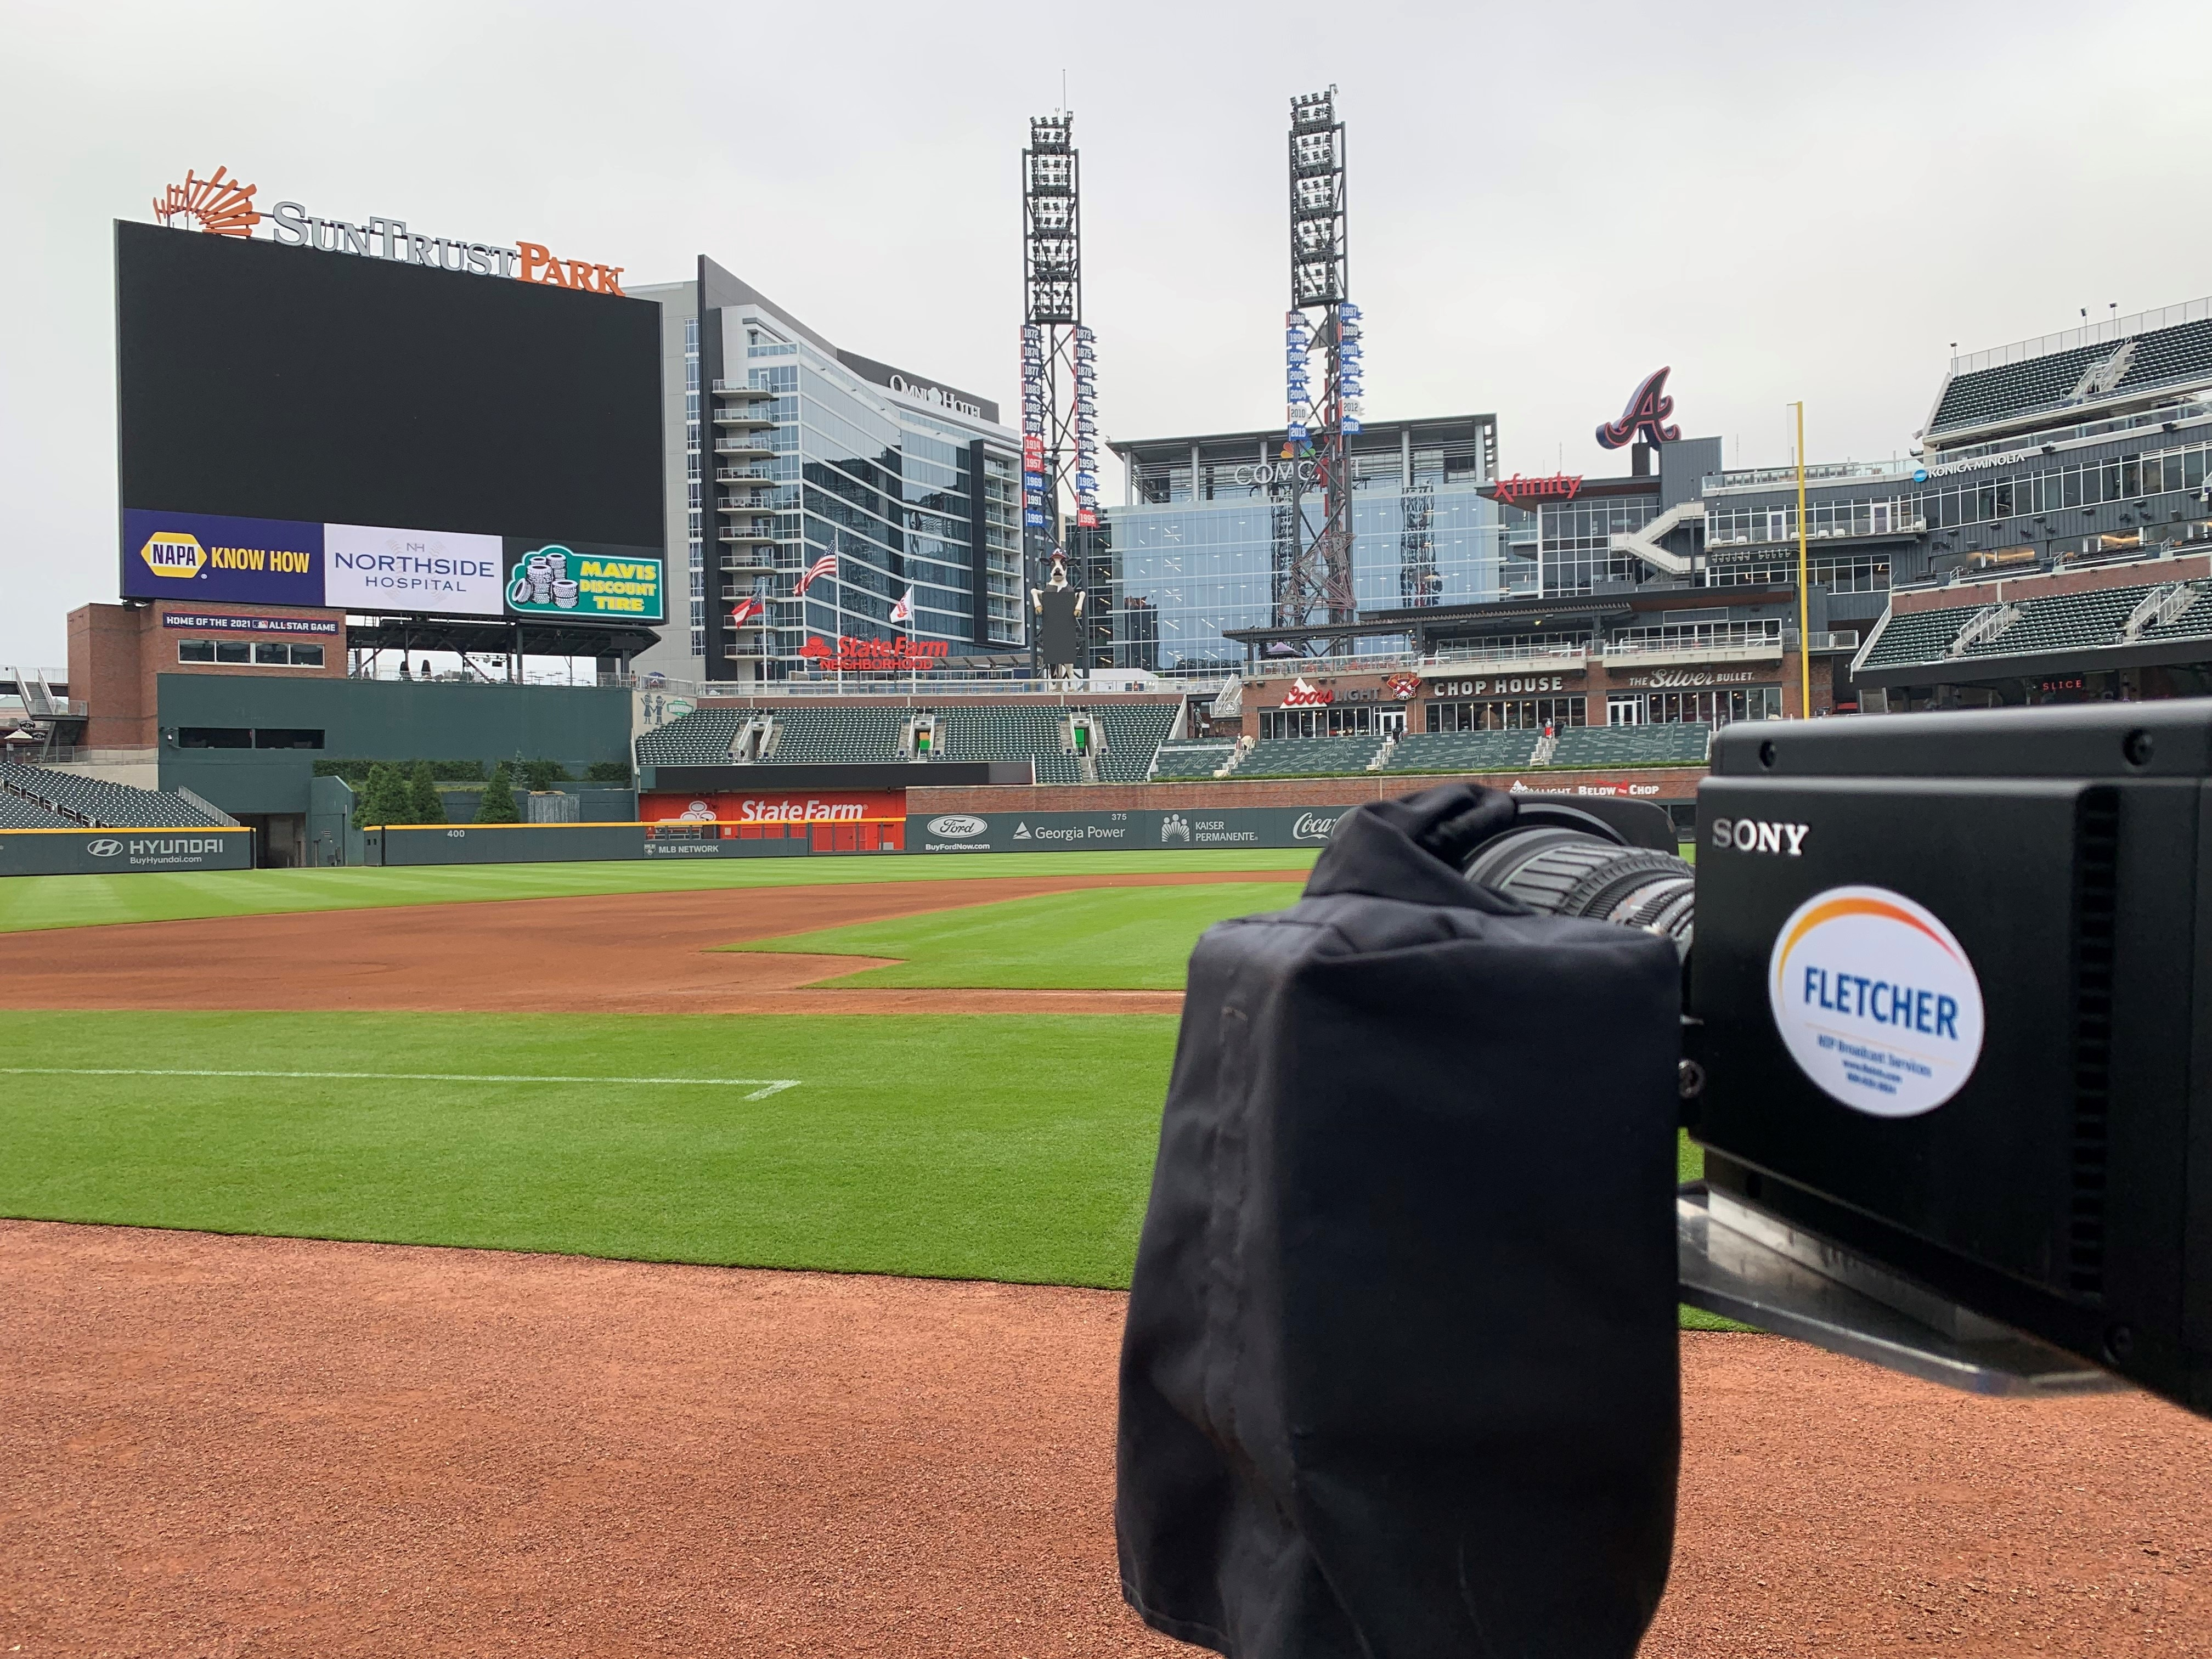 A Sony HDCV-P50 camera, sporting a white oval Fletcher sticker, sits outside, low on the outfield at a baseball stadium. The camera is at extreme right, facing across the field to the left, and away from the viewer. View #2.